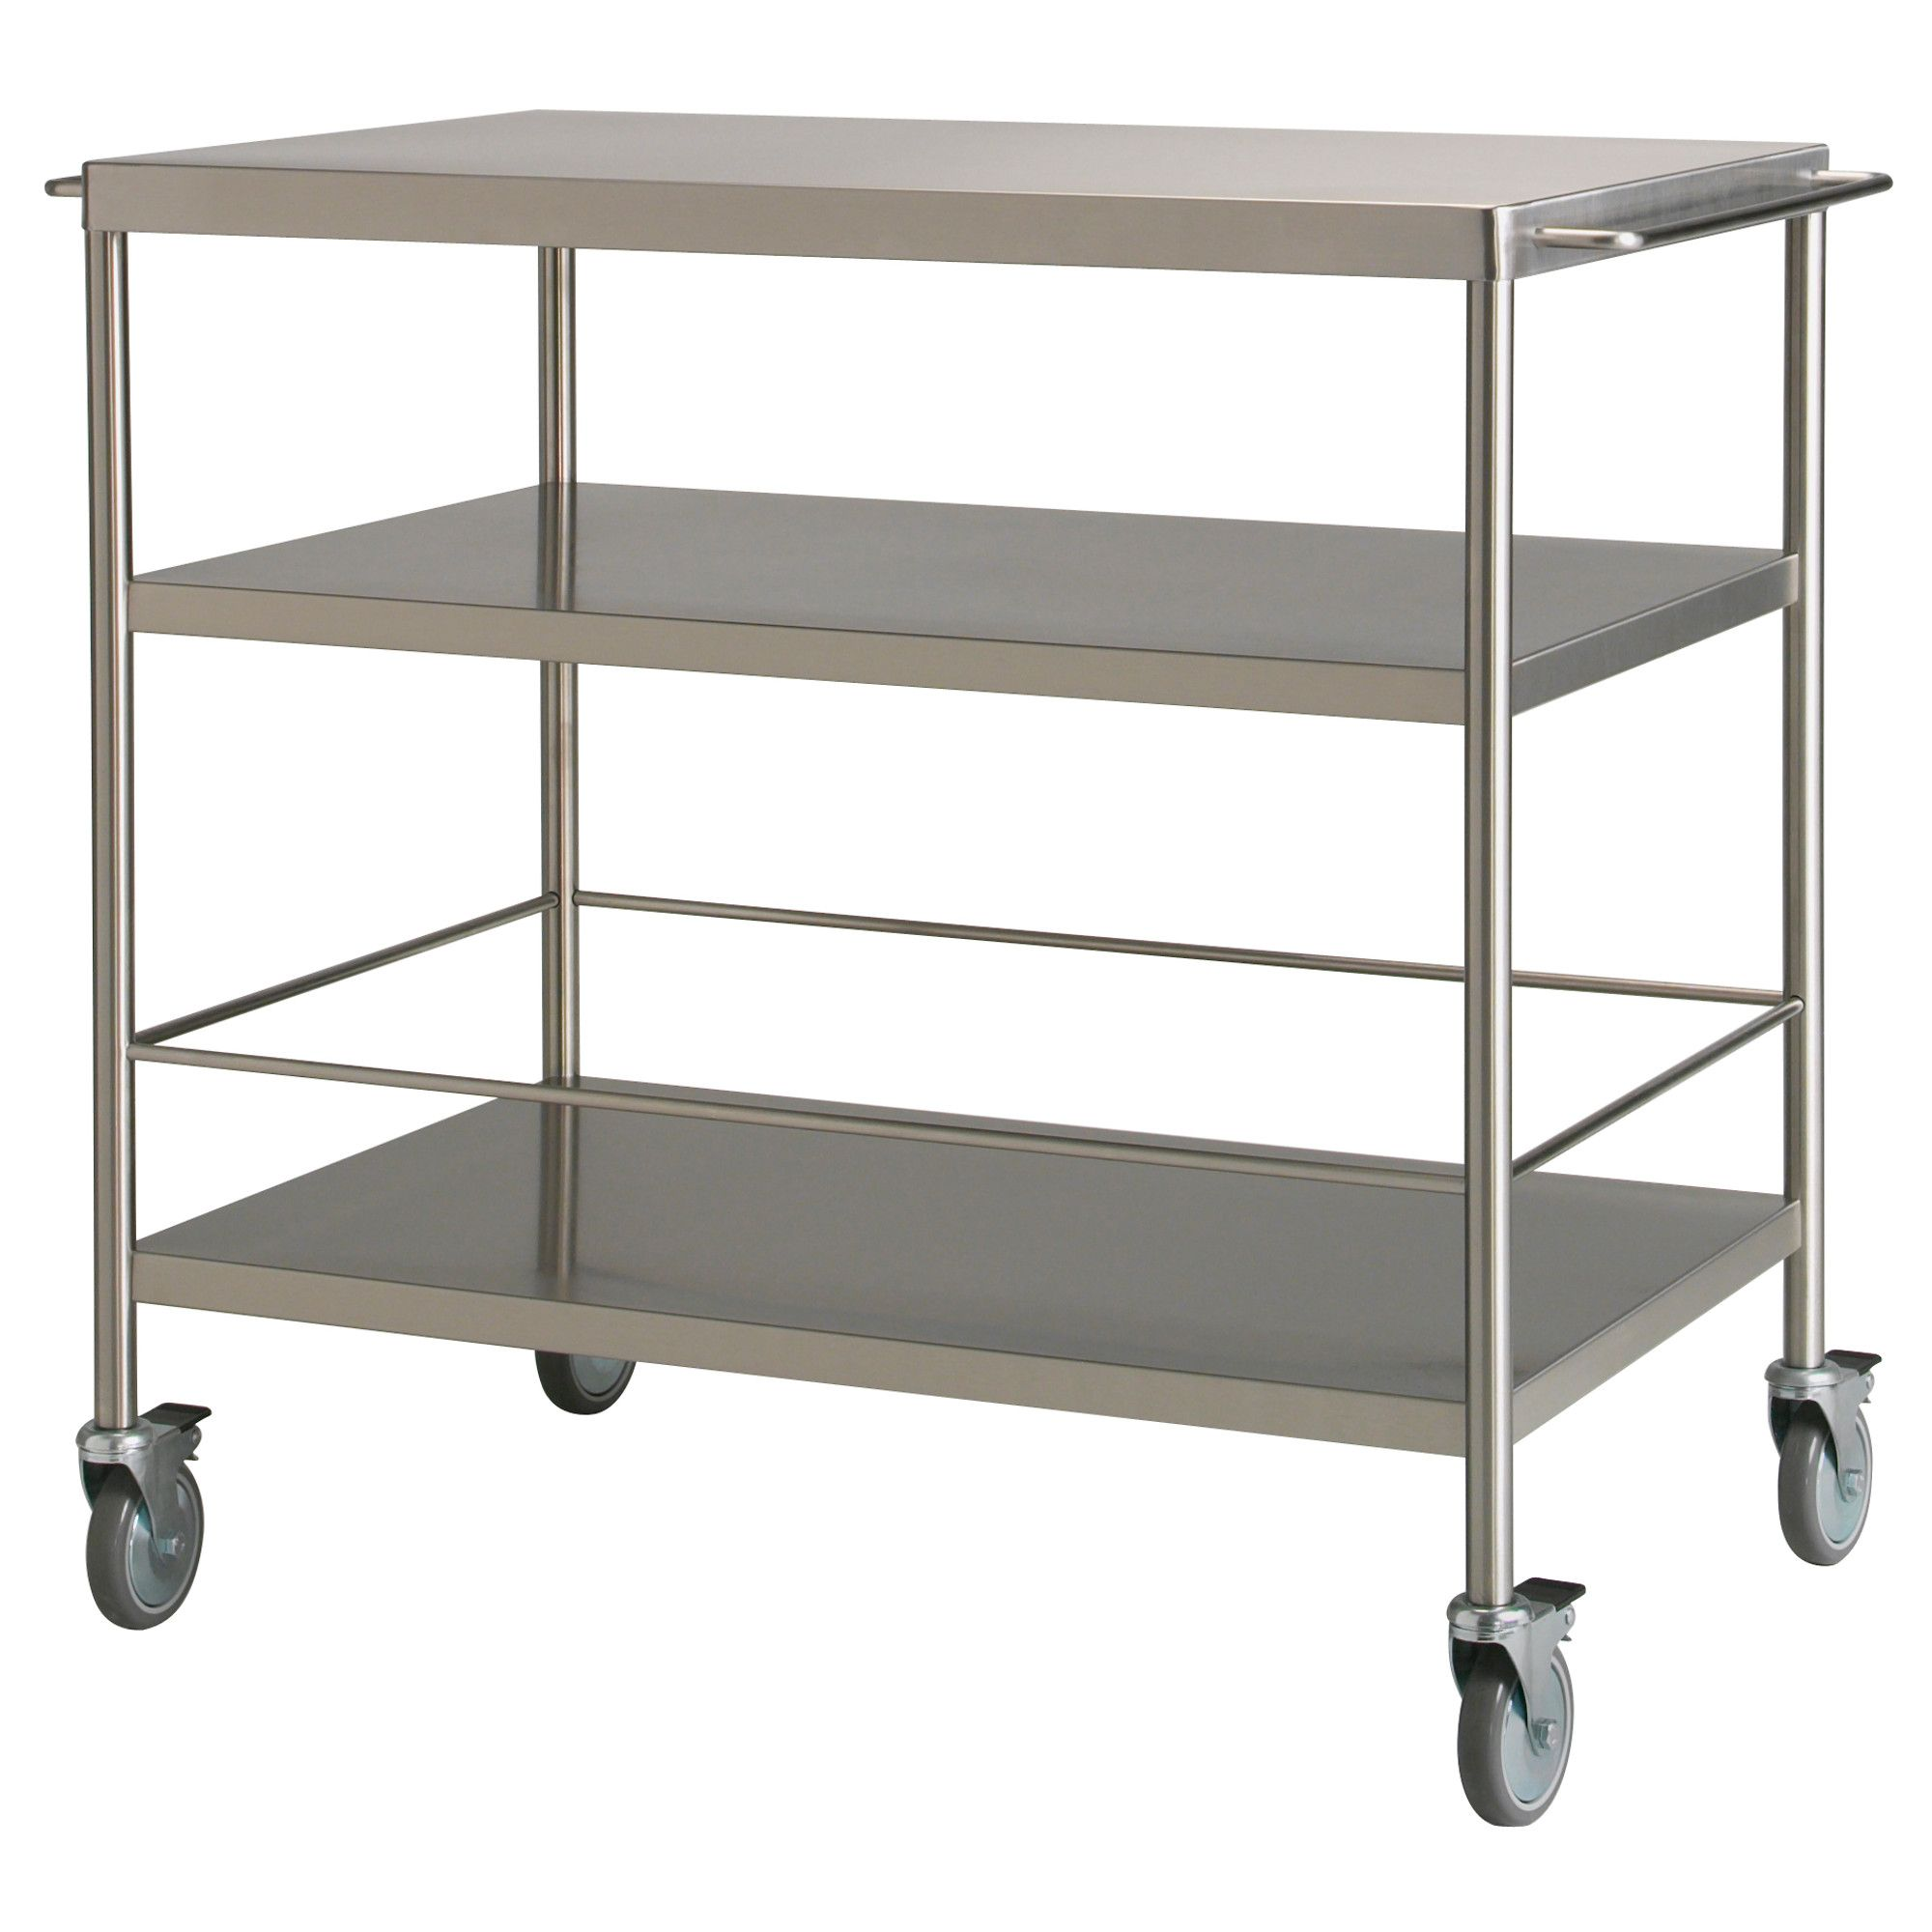 FLYTTA Kitchen cart, stainless steel | Kitchen carts, Extra storage ...